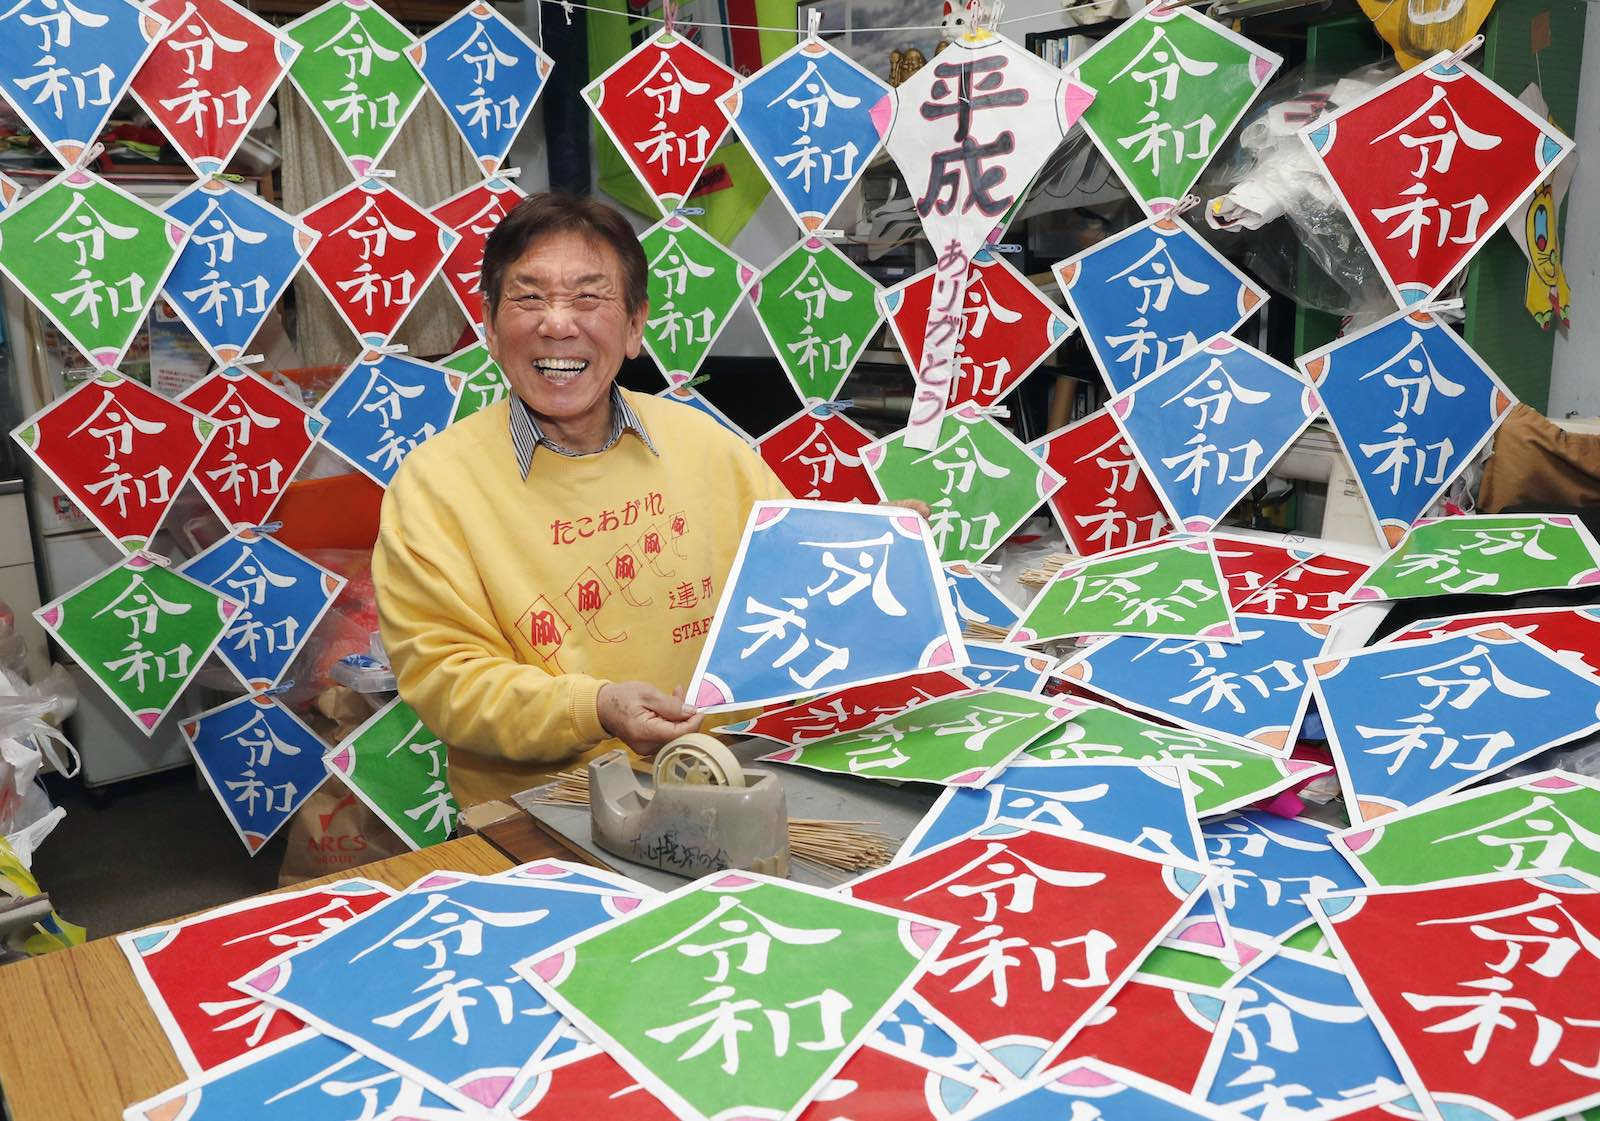 Mitsuo Tanaka, chief of a kite association in Sapporo, Hokkaido, shows off kites with the kanji characters for Japan's new era Reiwa (Photo: Kyodo News via Getty)